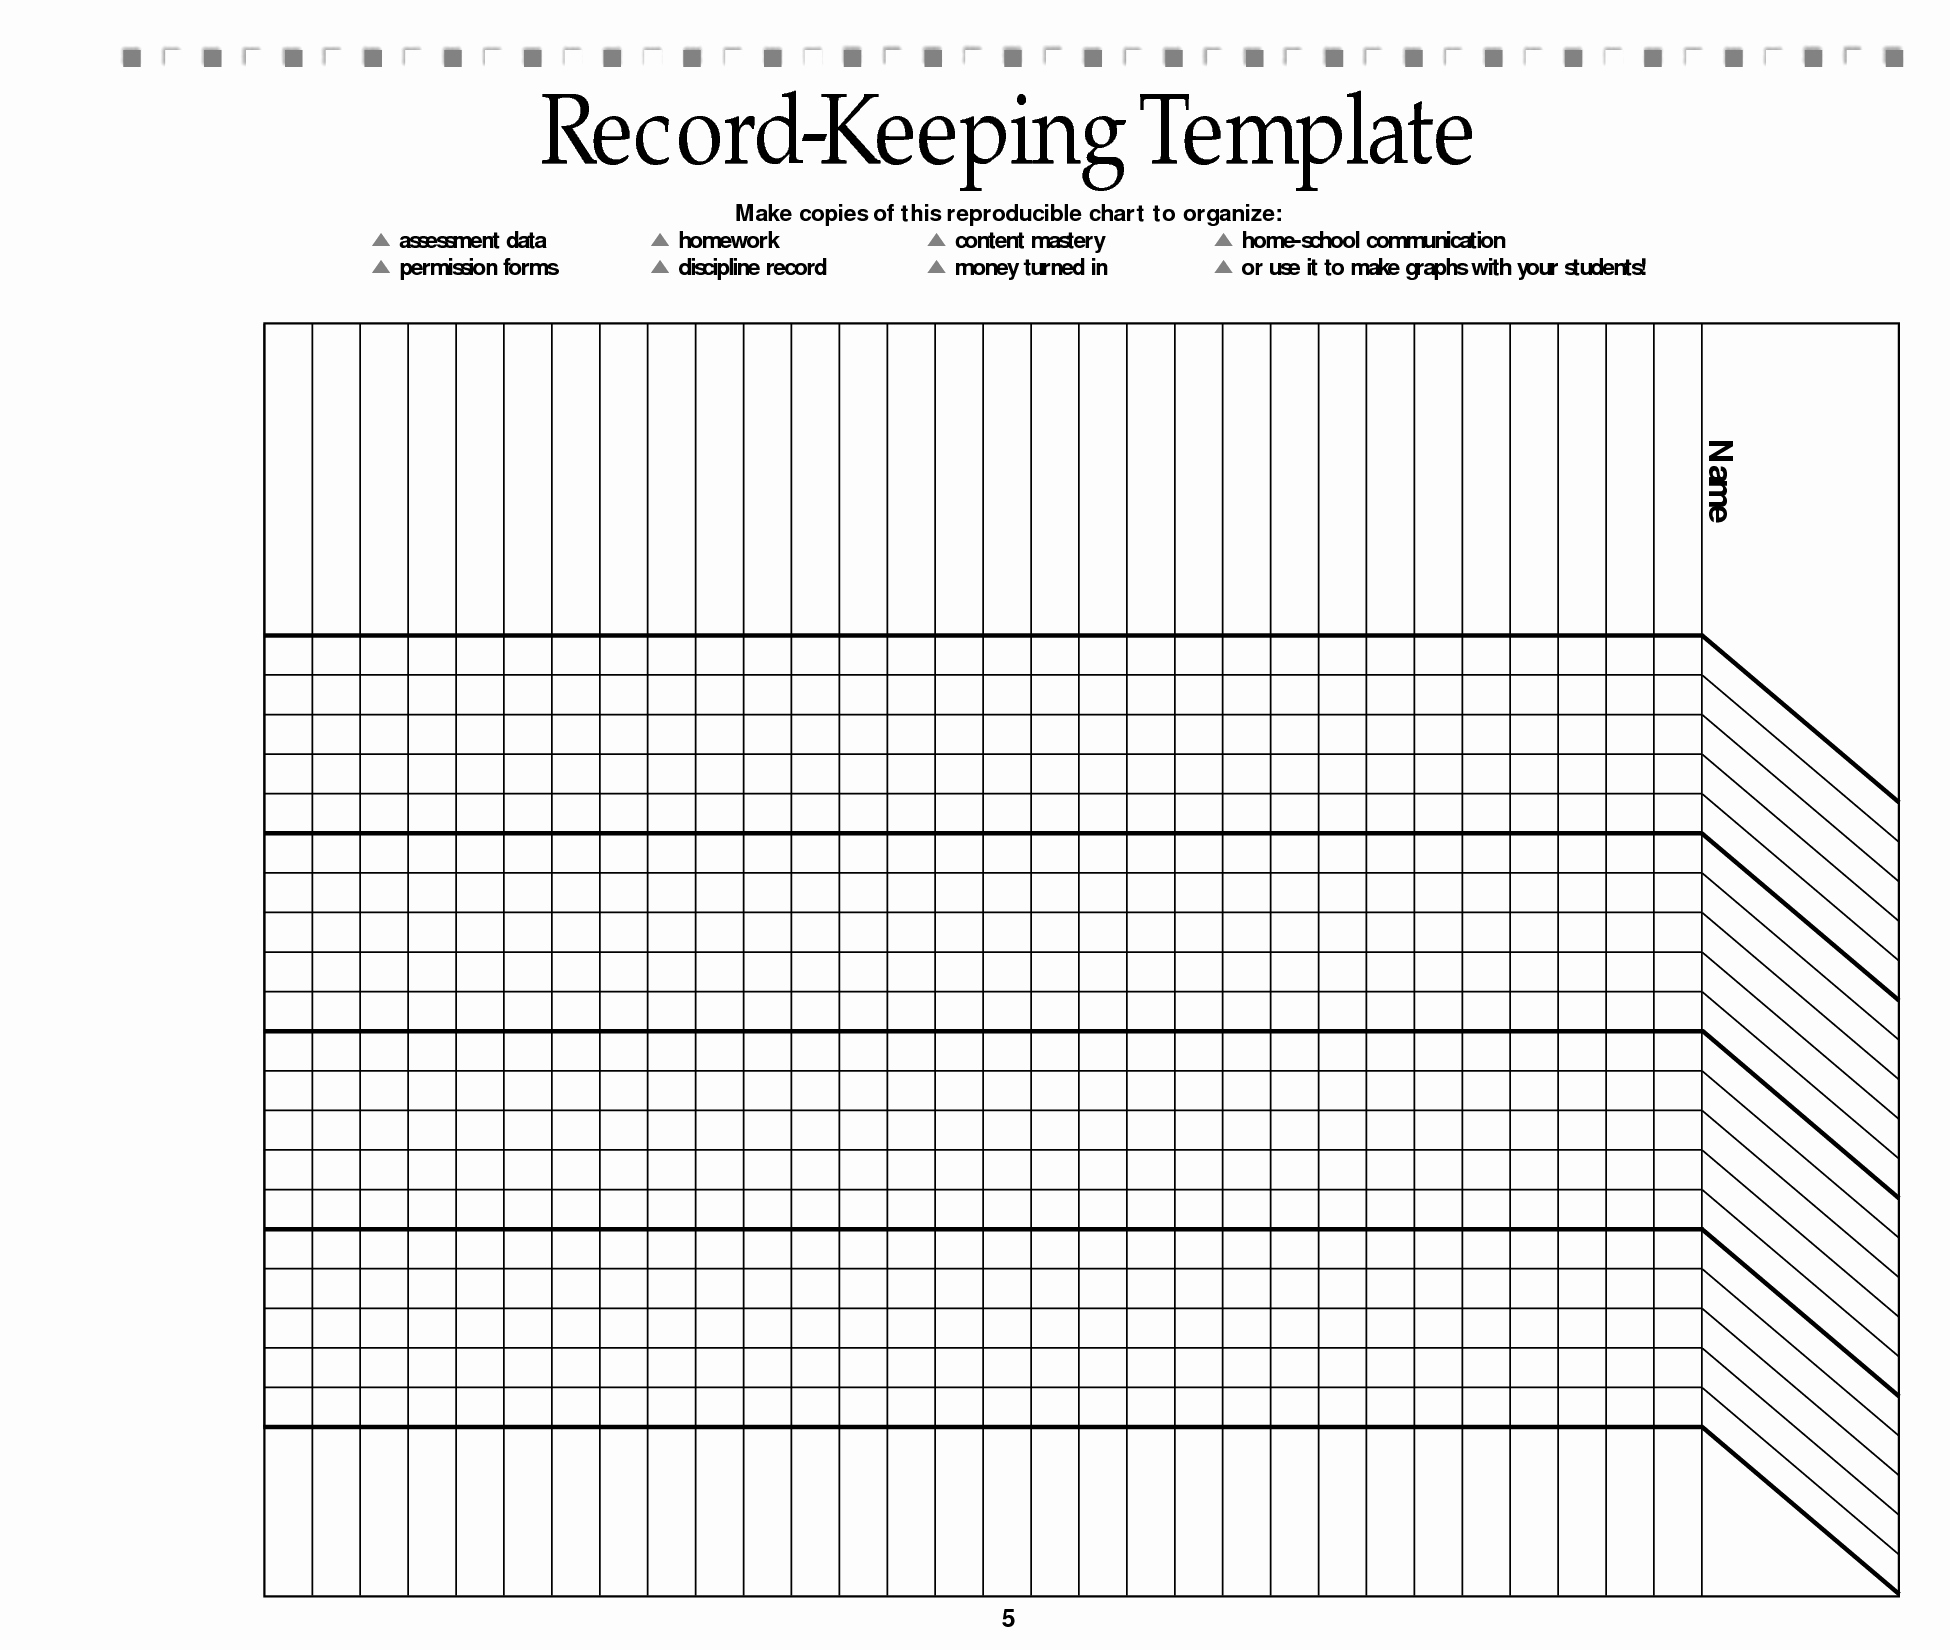 Homeschool Grading Template Awesome Free Printable Record Keeping forms